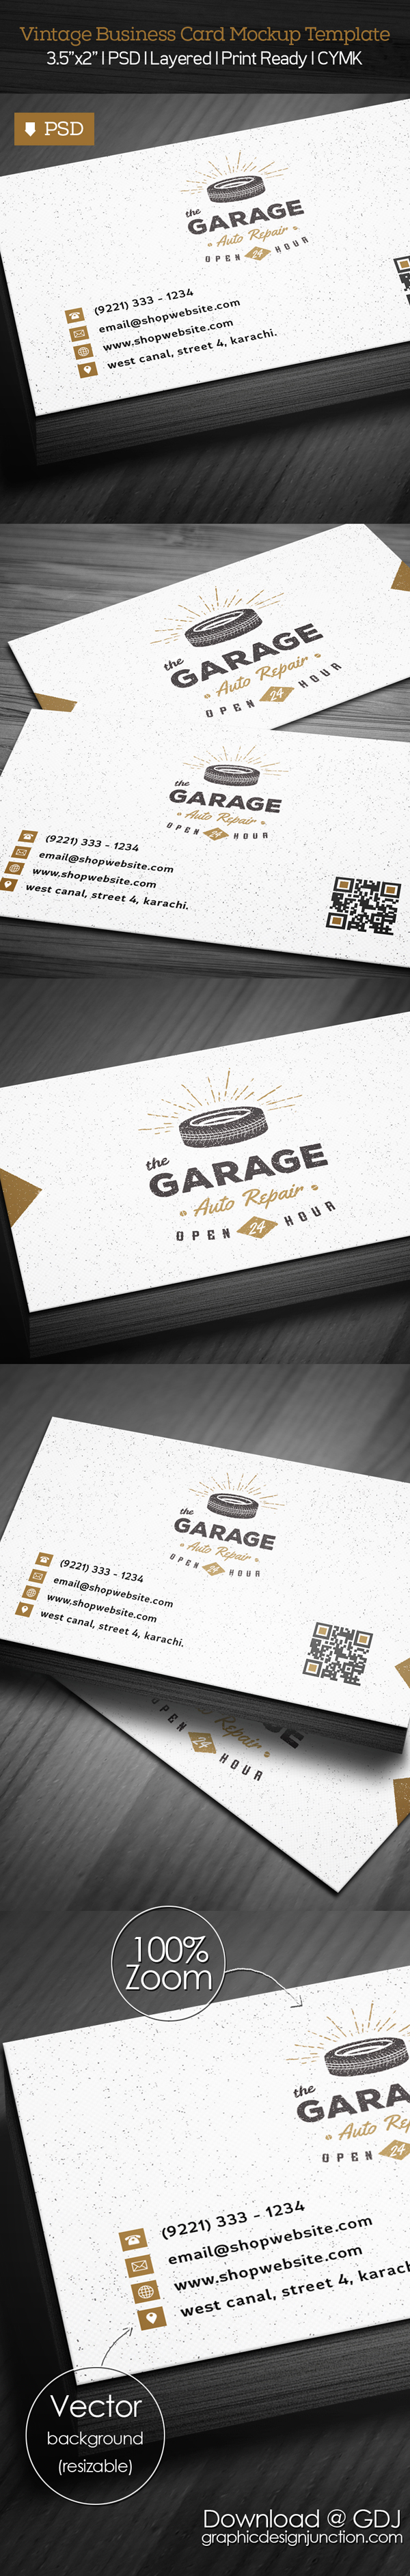 Vintage Business Card PSD Mockup